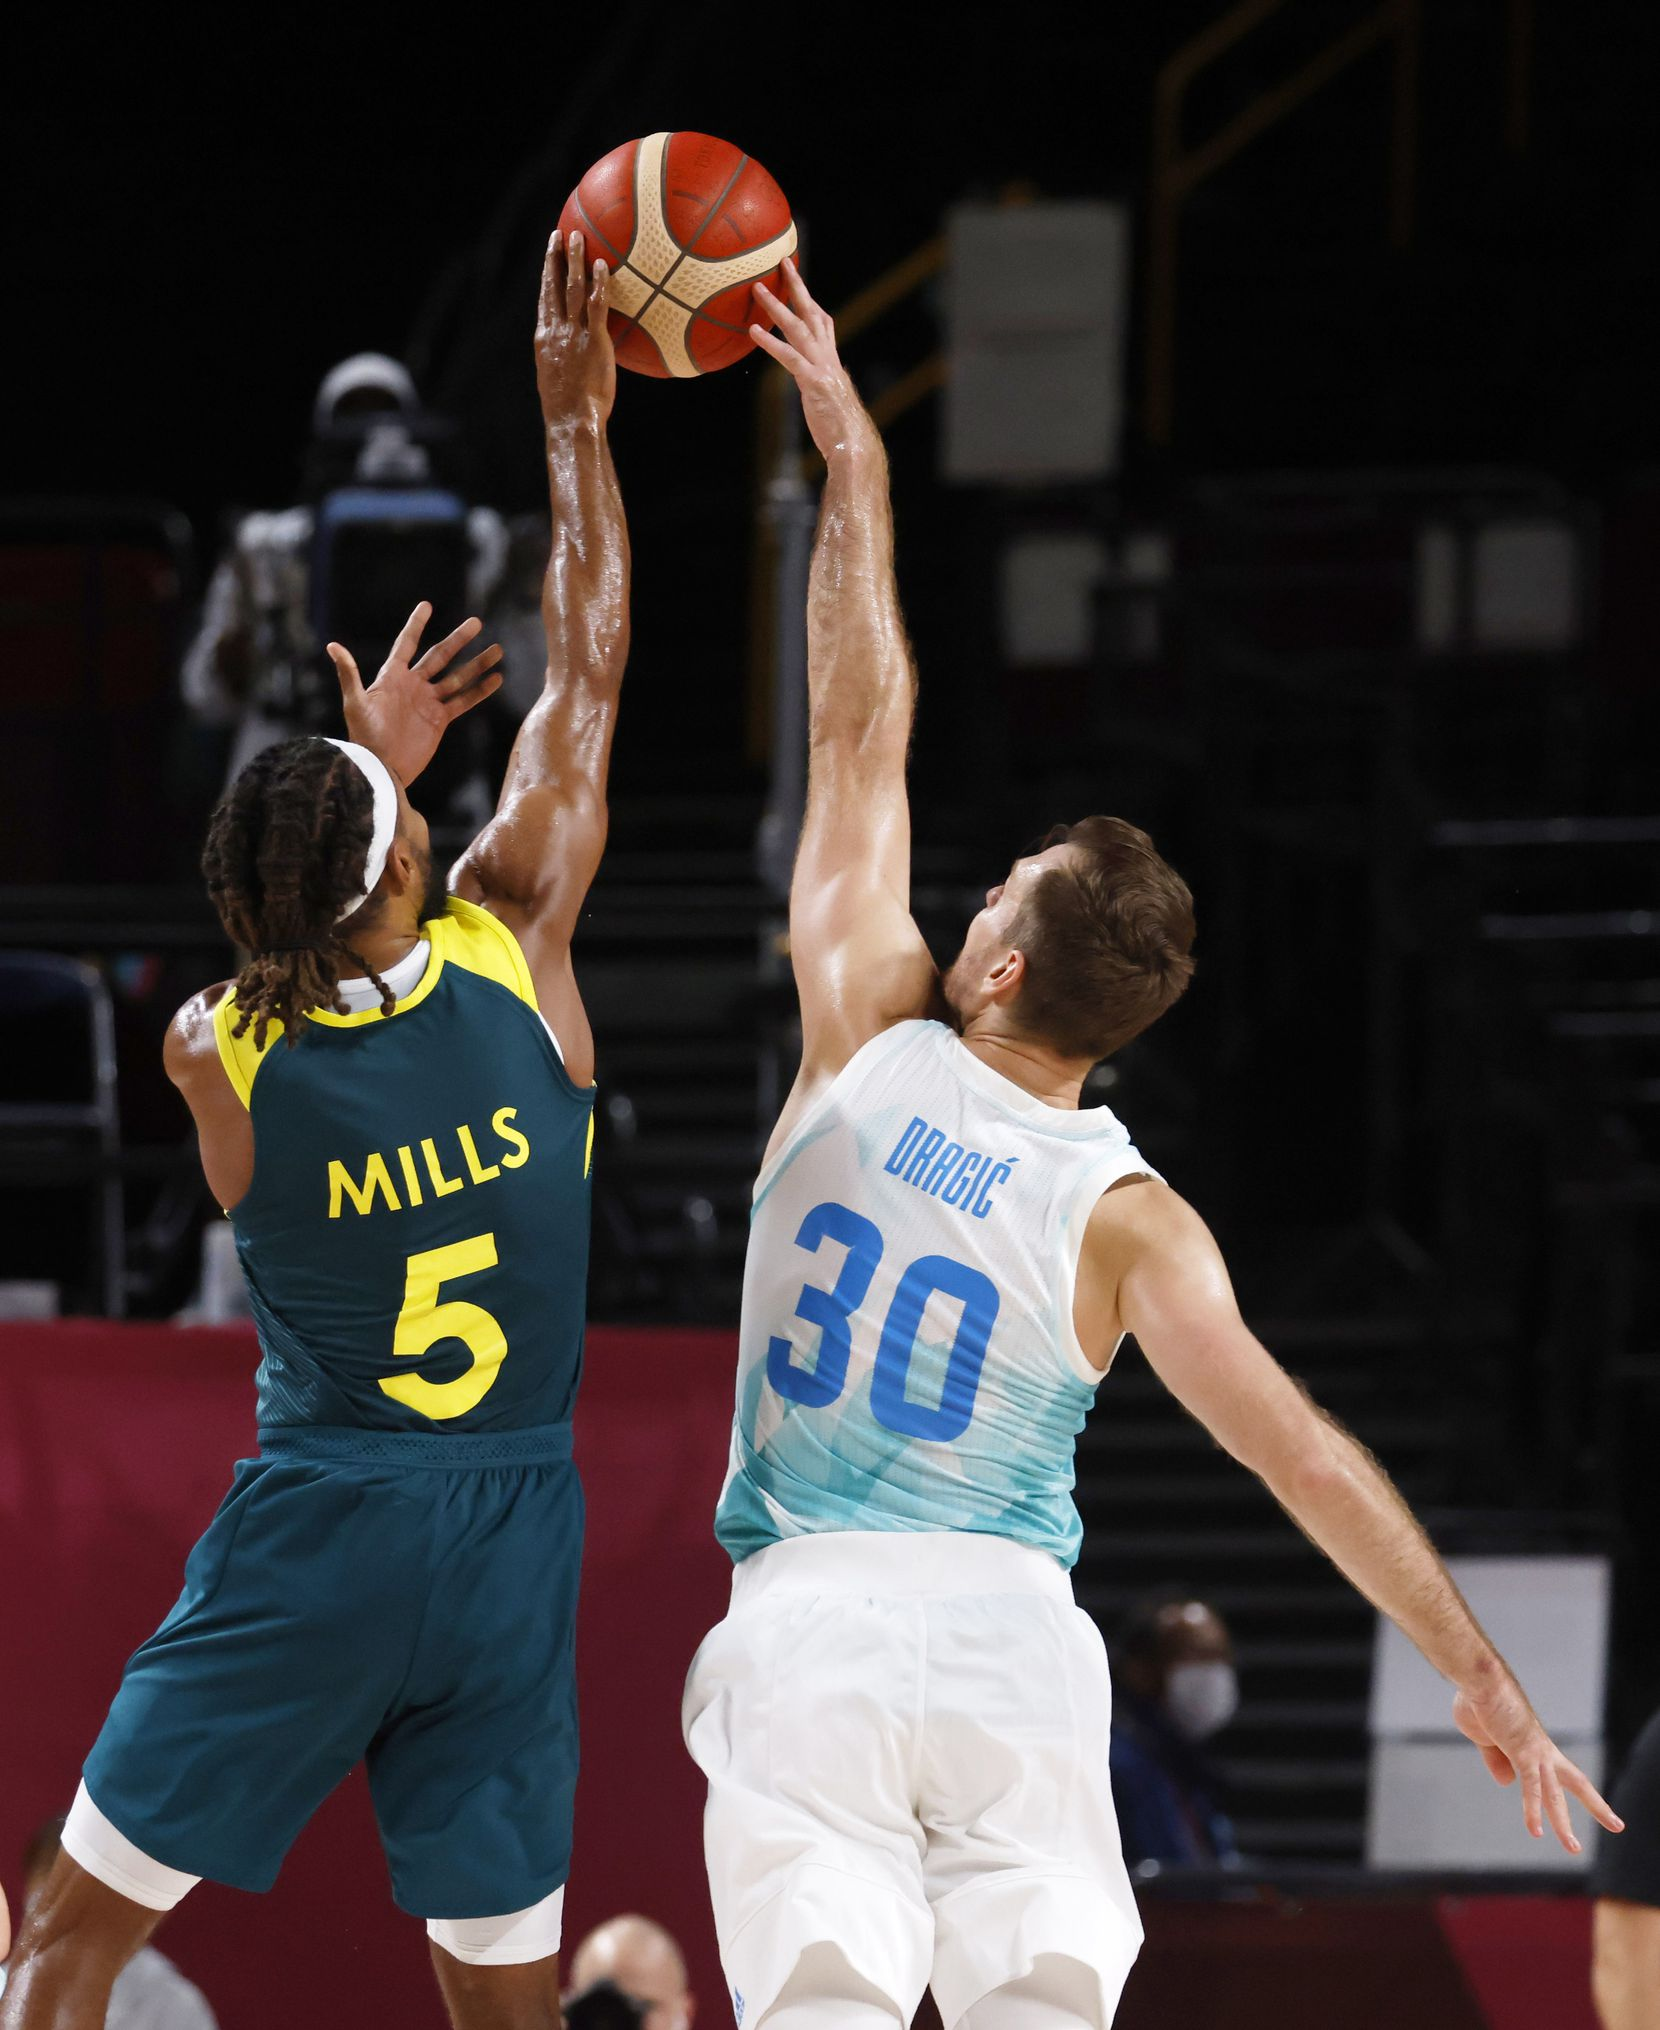 Slovenia's Zoran Dragic (30) blocks a shot attempt from Australia's Patty Mills (5) during the second quarter of play in the bronze medal basketball game at the postponed 2020 Tokyo Olympics at Saitama Super Arena, on Saturday, August 7, 2021, in Saitama, Japan. (Vernon Bryant/The Dallas Morning News)